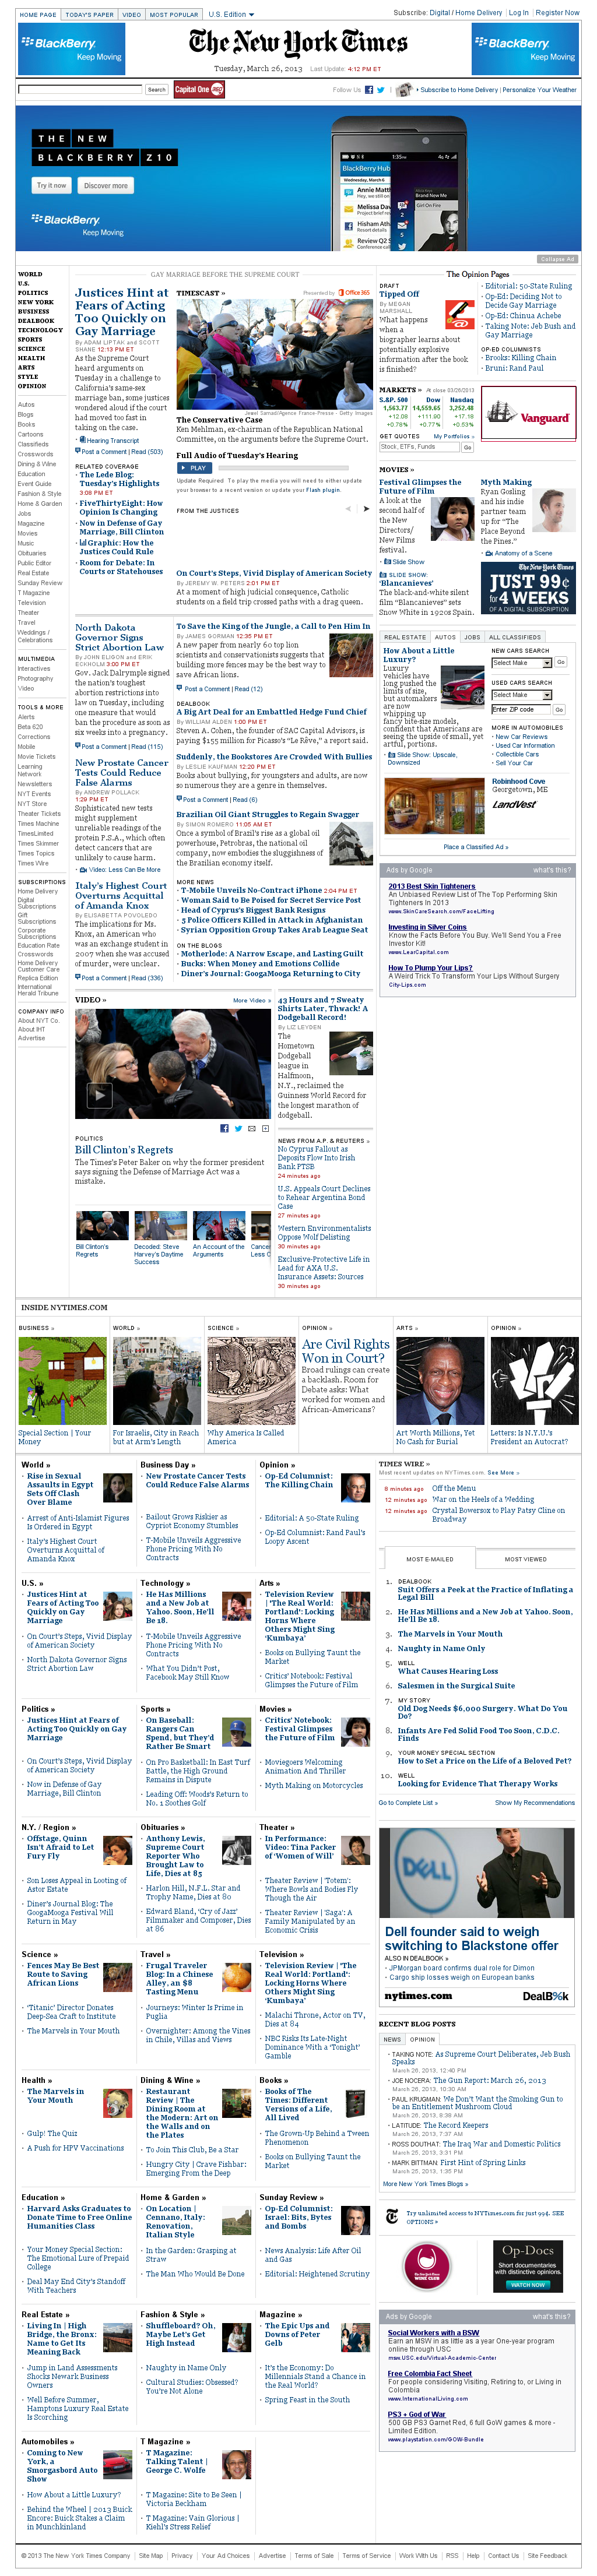 The New York Times at Tuesday March 26, 2013, 8:30 p.m. UTC